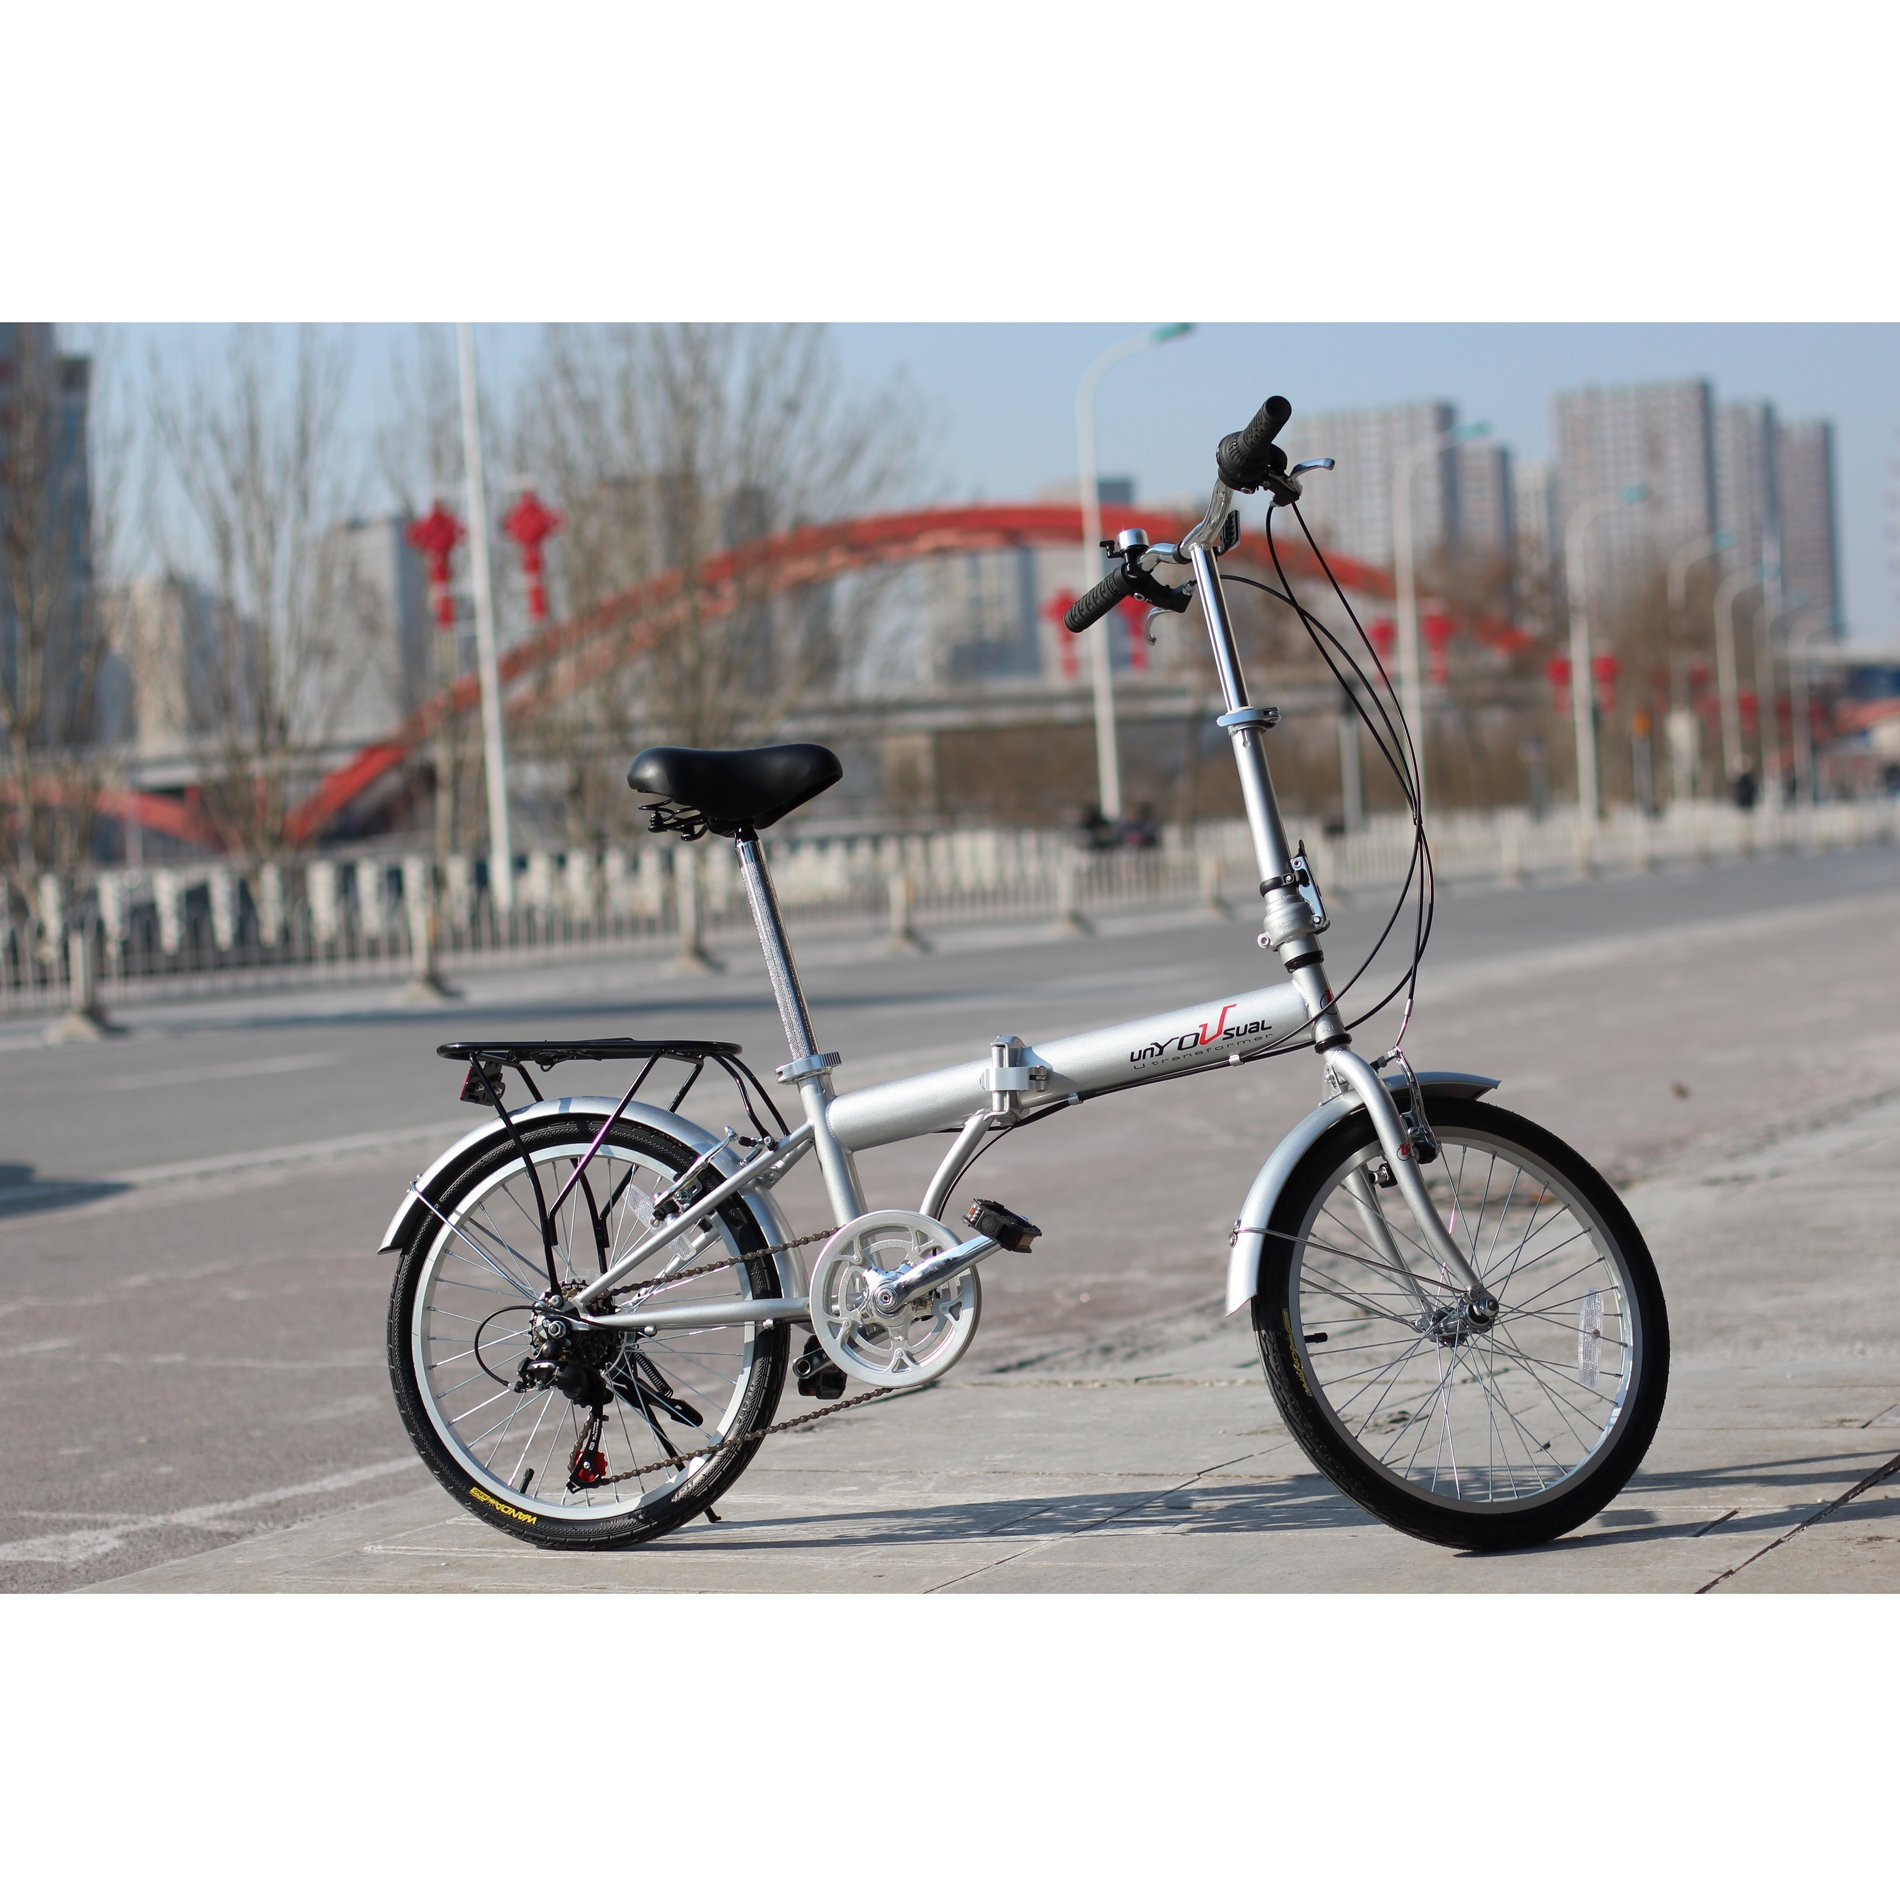 unYOUsual U transformer 20'' Folding City Bike Bicycle 6 Speed Shimano Gear Steel Frame Mudguard Rear Carrier Silver by IDS (Image #3)